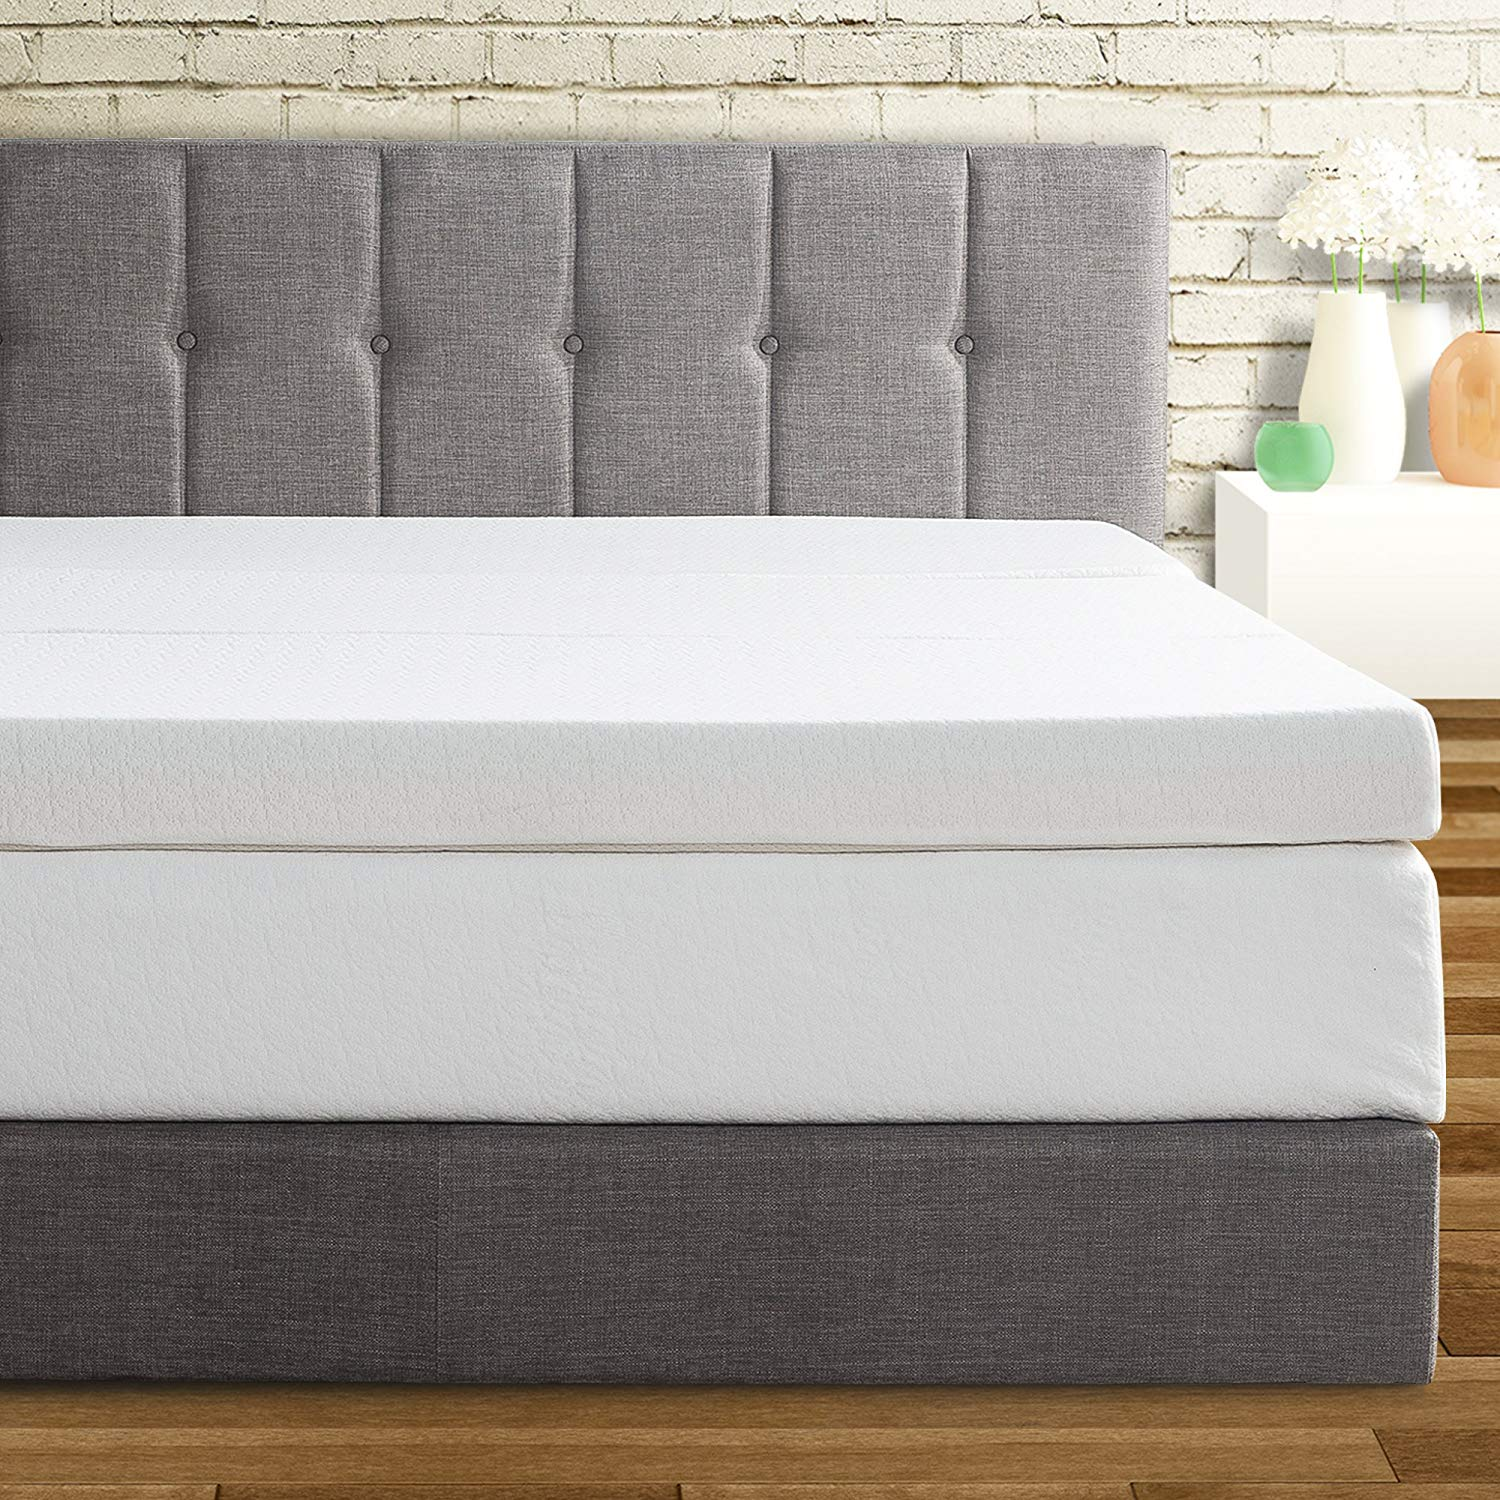 BPM Best Memory Foam Mattress Topper Review by www.snoremagazine.com